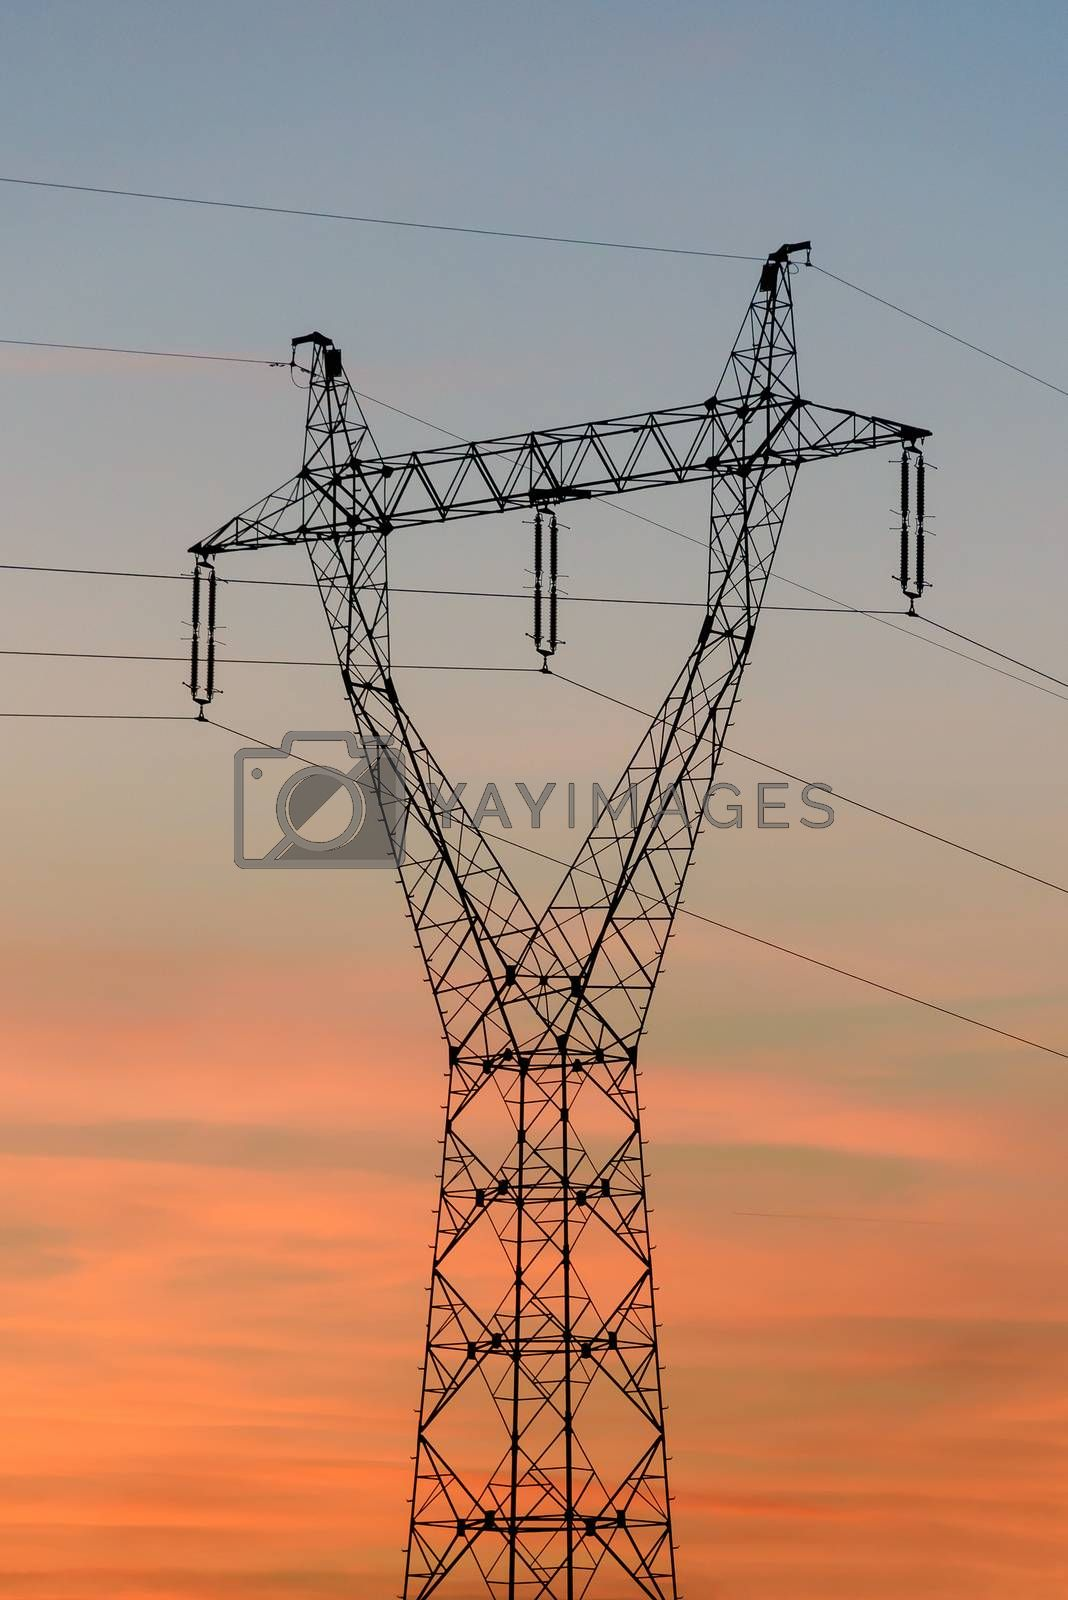 Closeup of electricity pylon and high voltage power lines at sunset